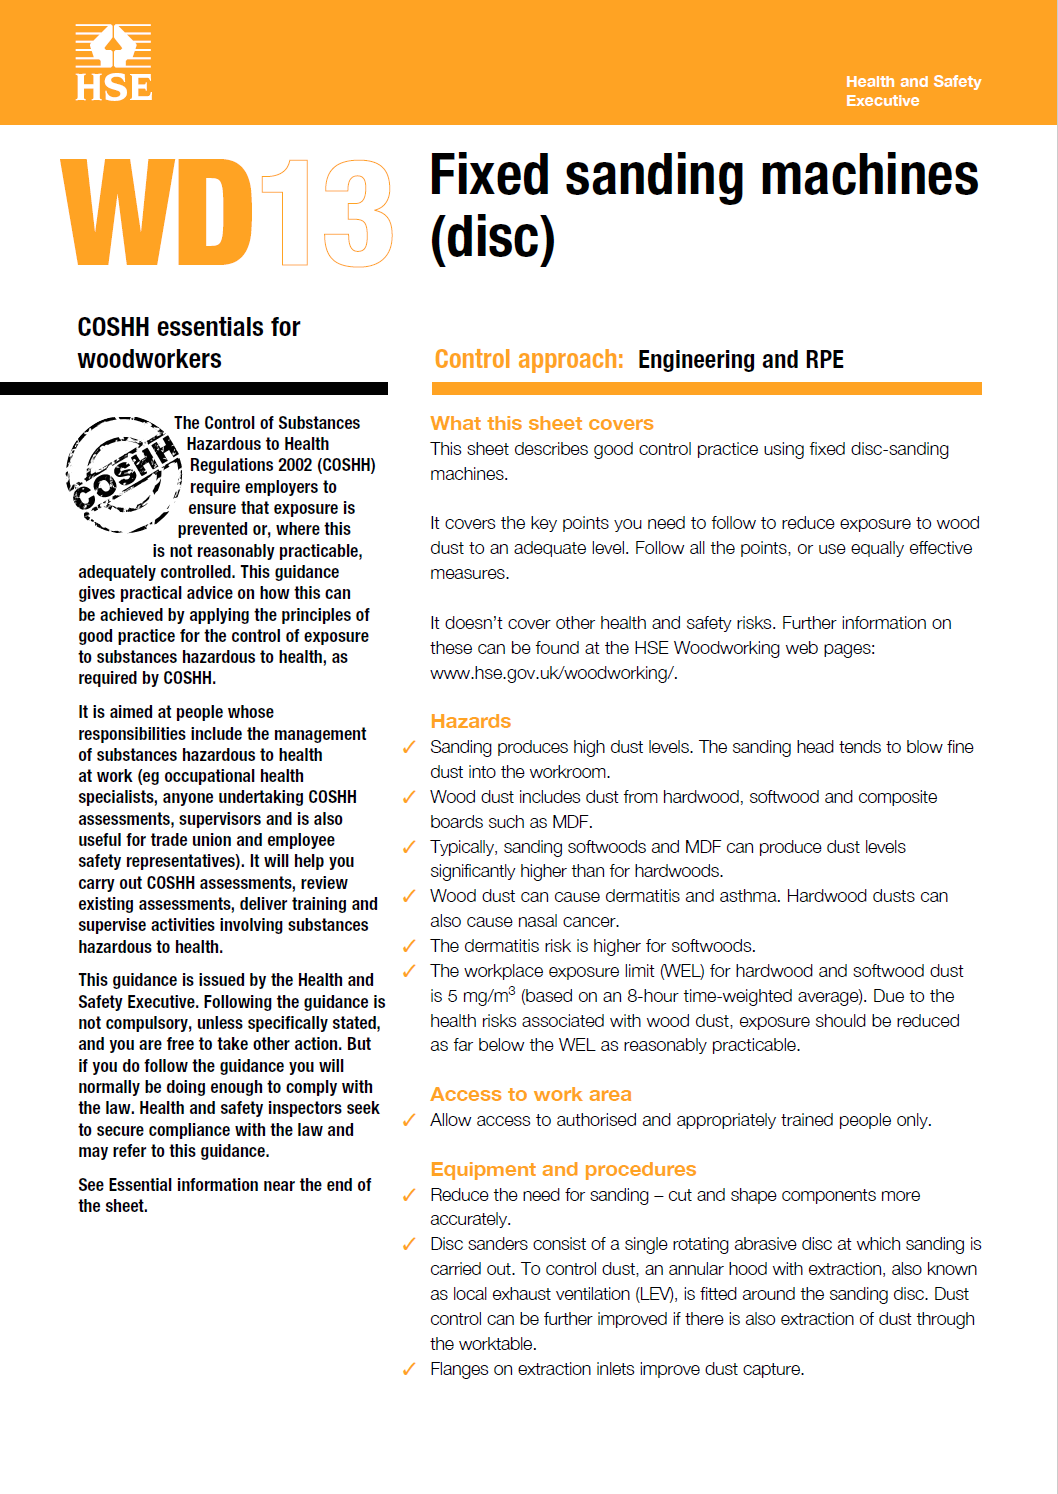 WD13: Fixed sanding machines (disc)